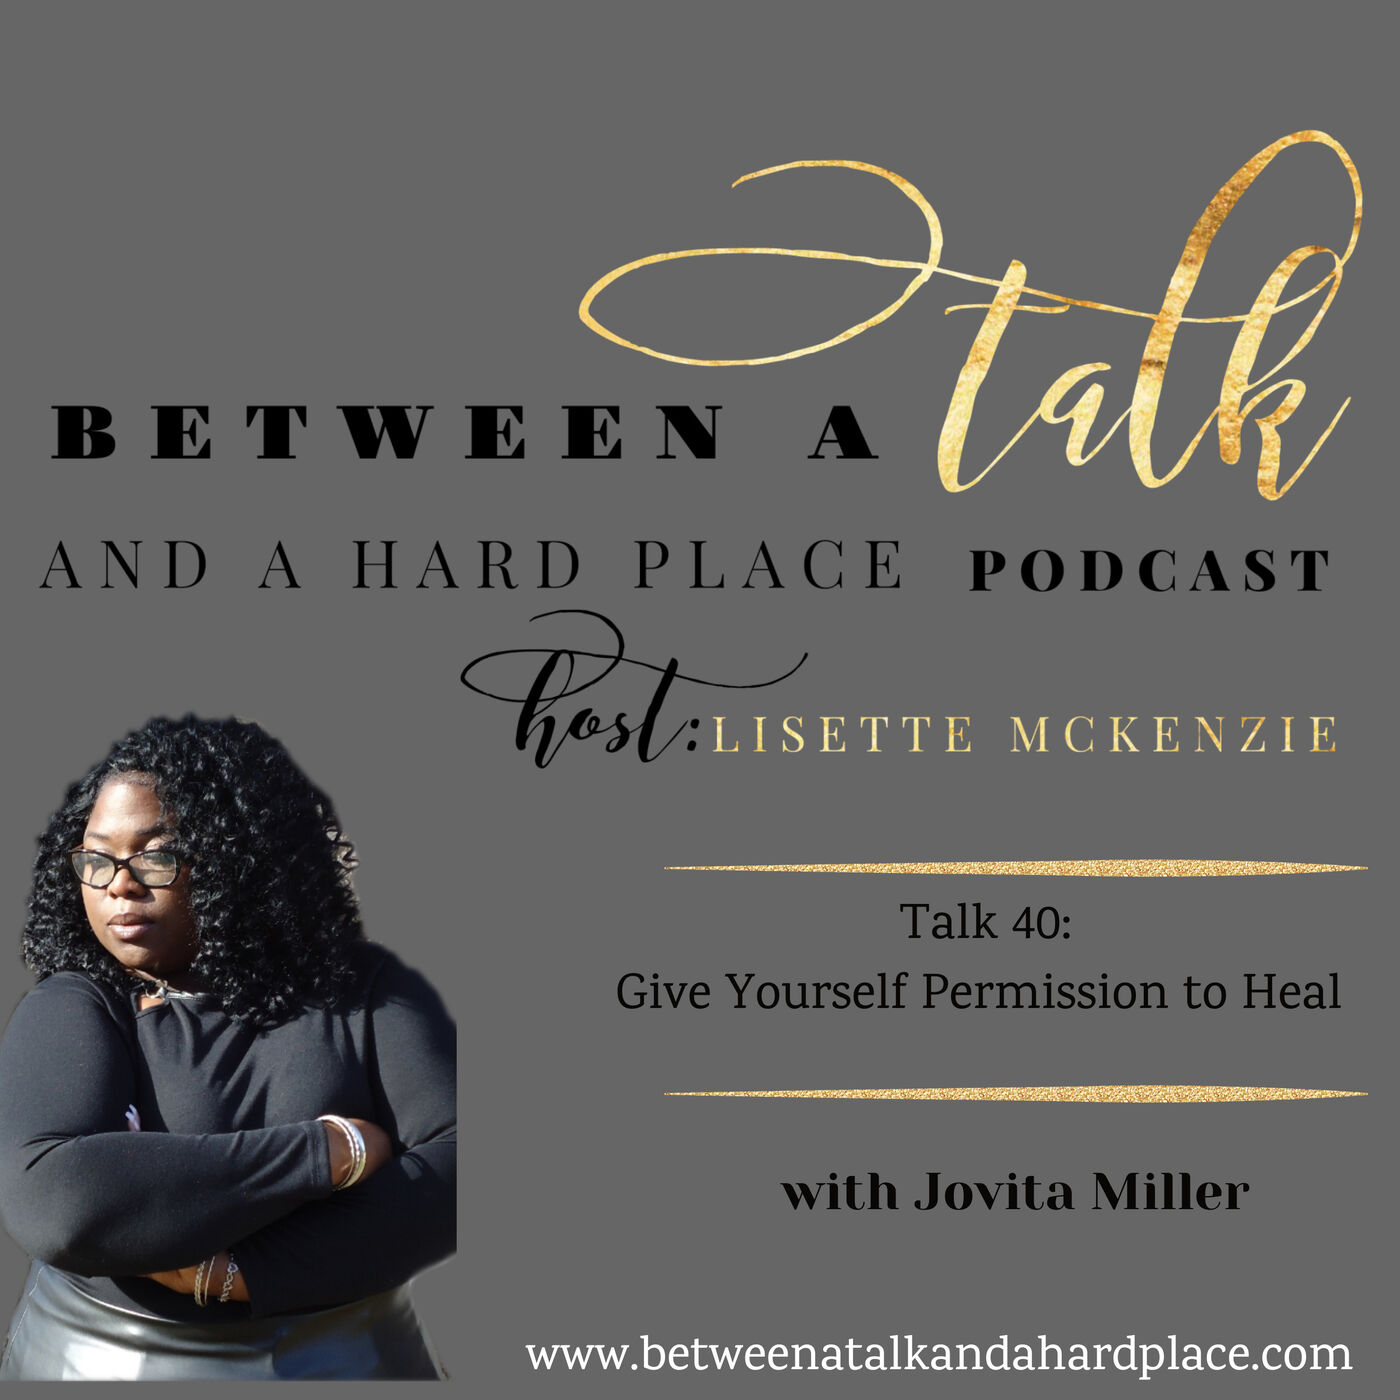 Talk 40: Give Yourself Permission to Heal